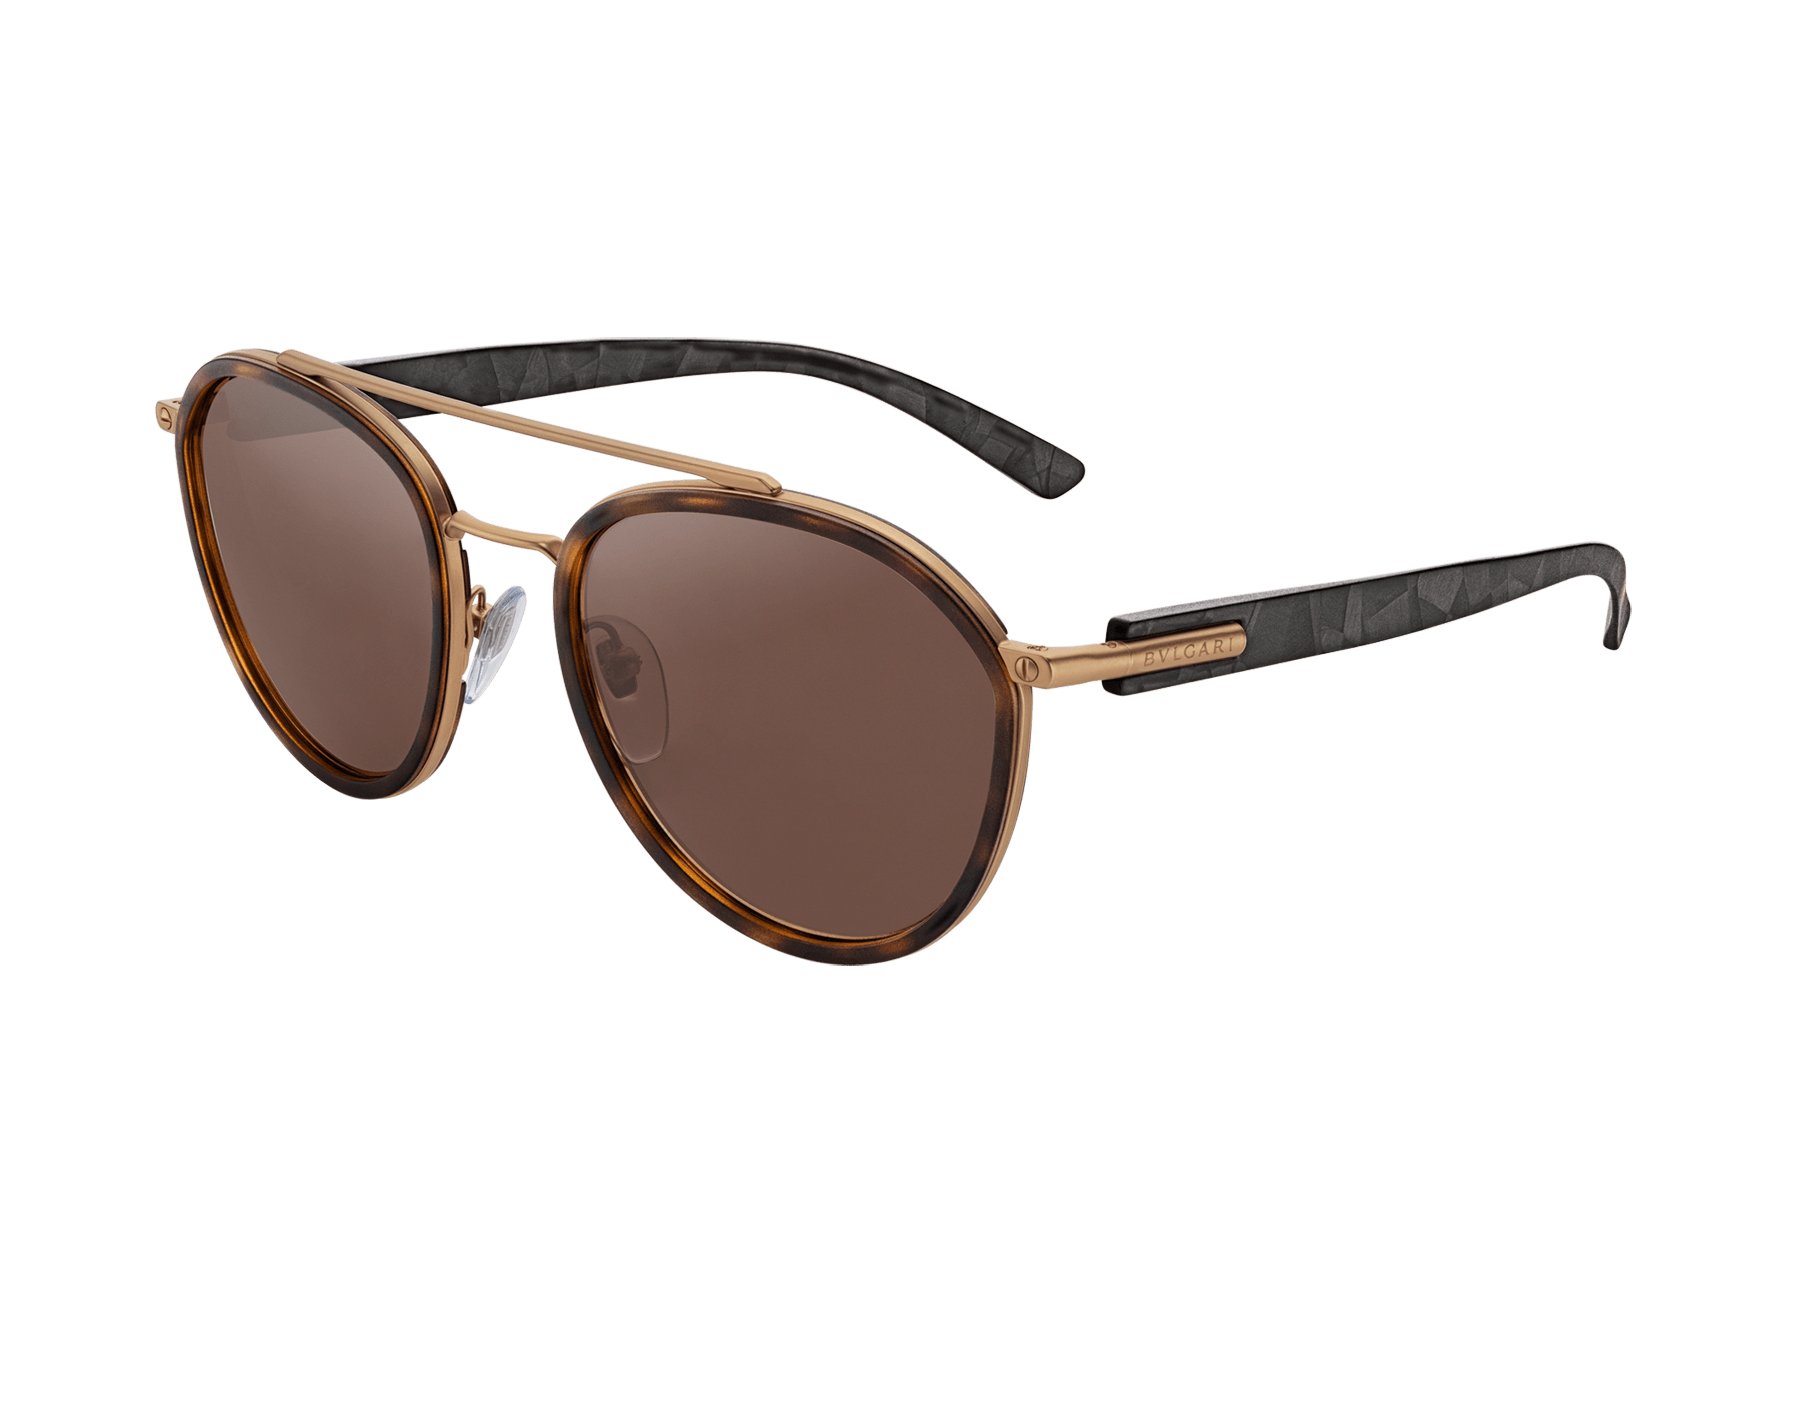 Bvlgari Bvlgari metal rounded double bridge sunglasses. 904042 image 1